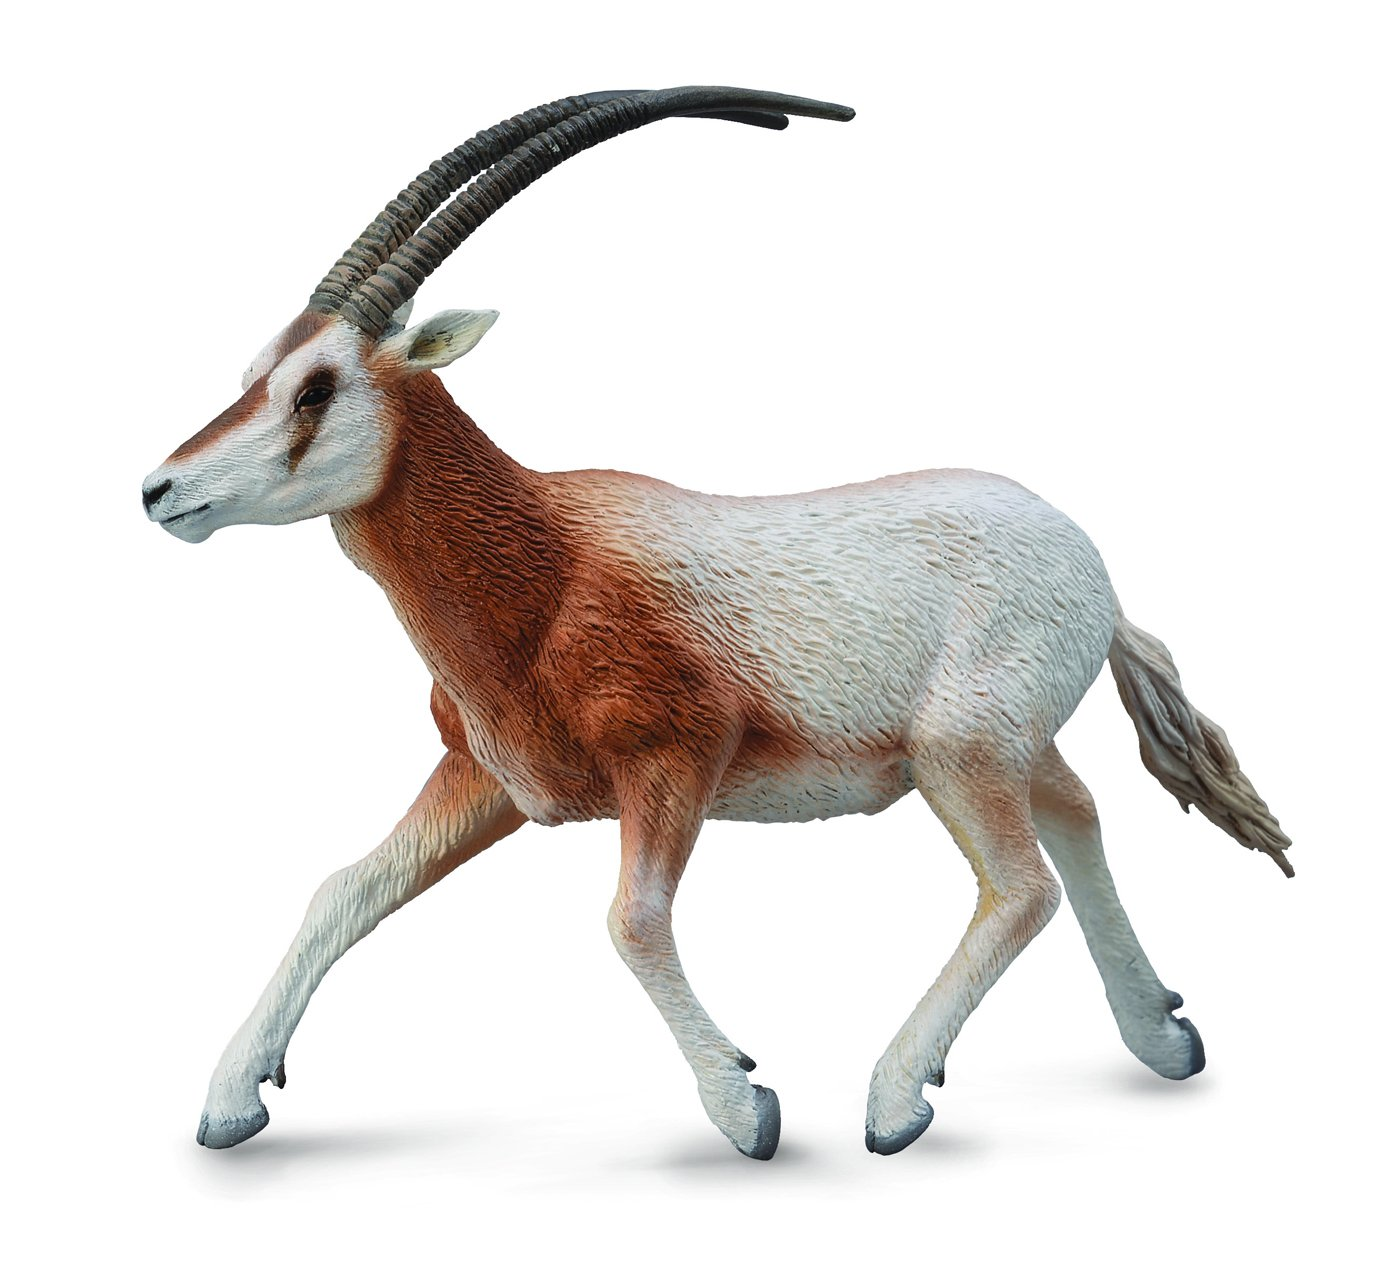 CollectA Wildlife Scimitar-Horned Oryx Toy Figure - Authentic Hand Painted Model